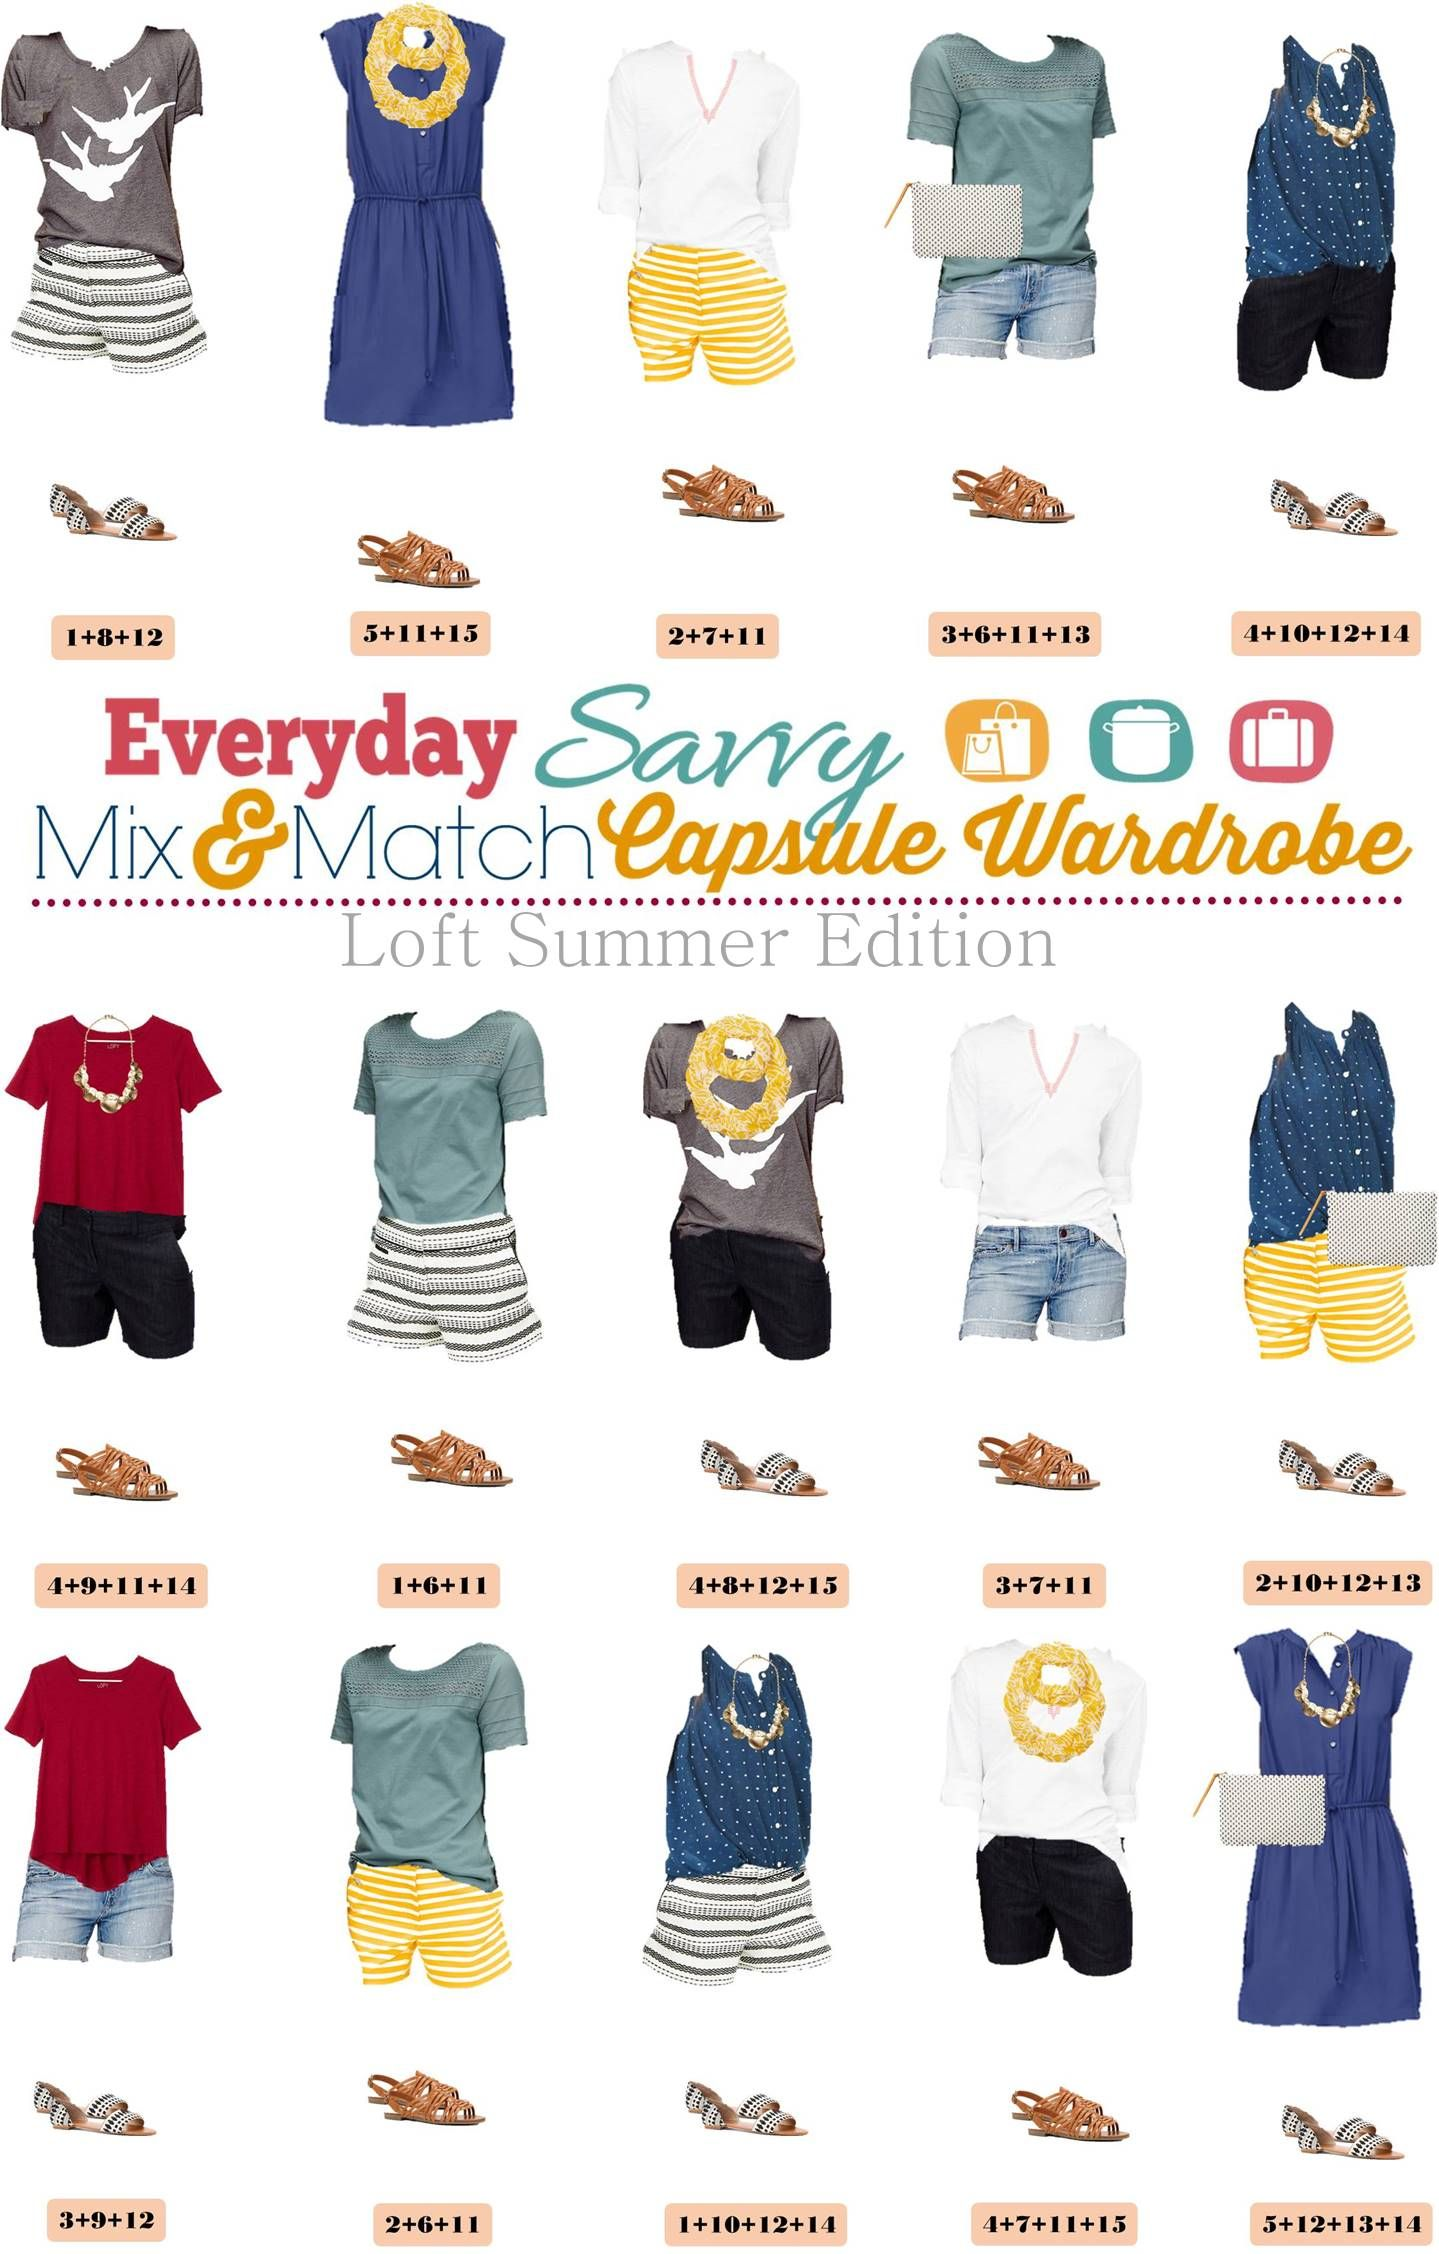 Basic Spring Summer Capsule Wardrobe 86 Outfits for Stay at